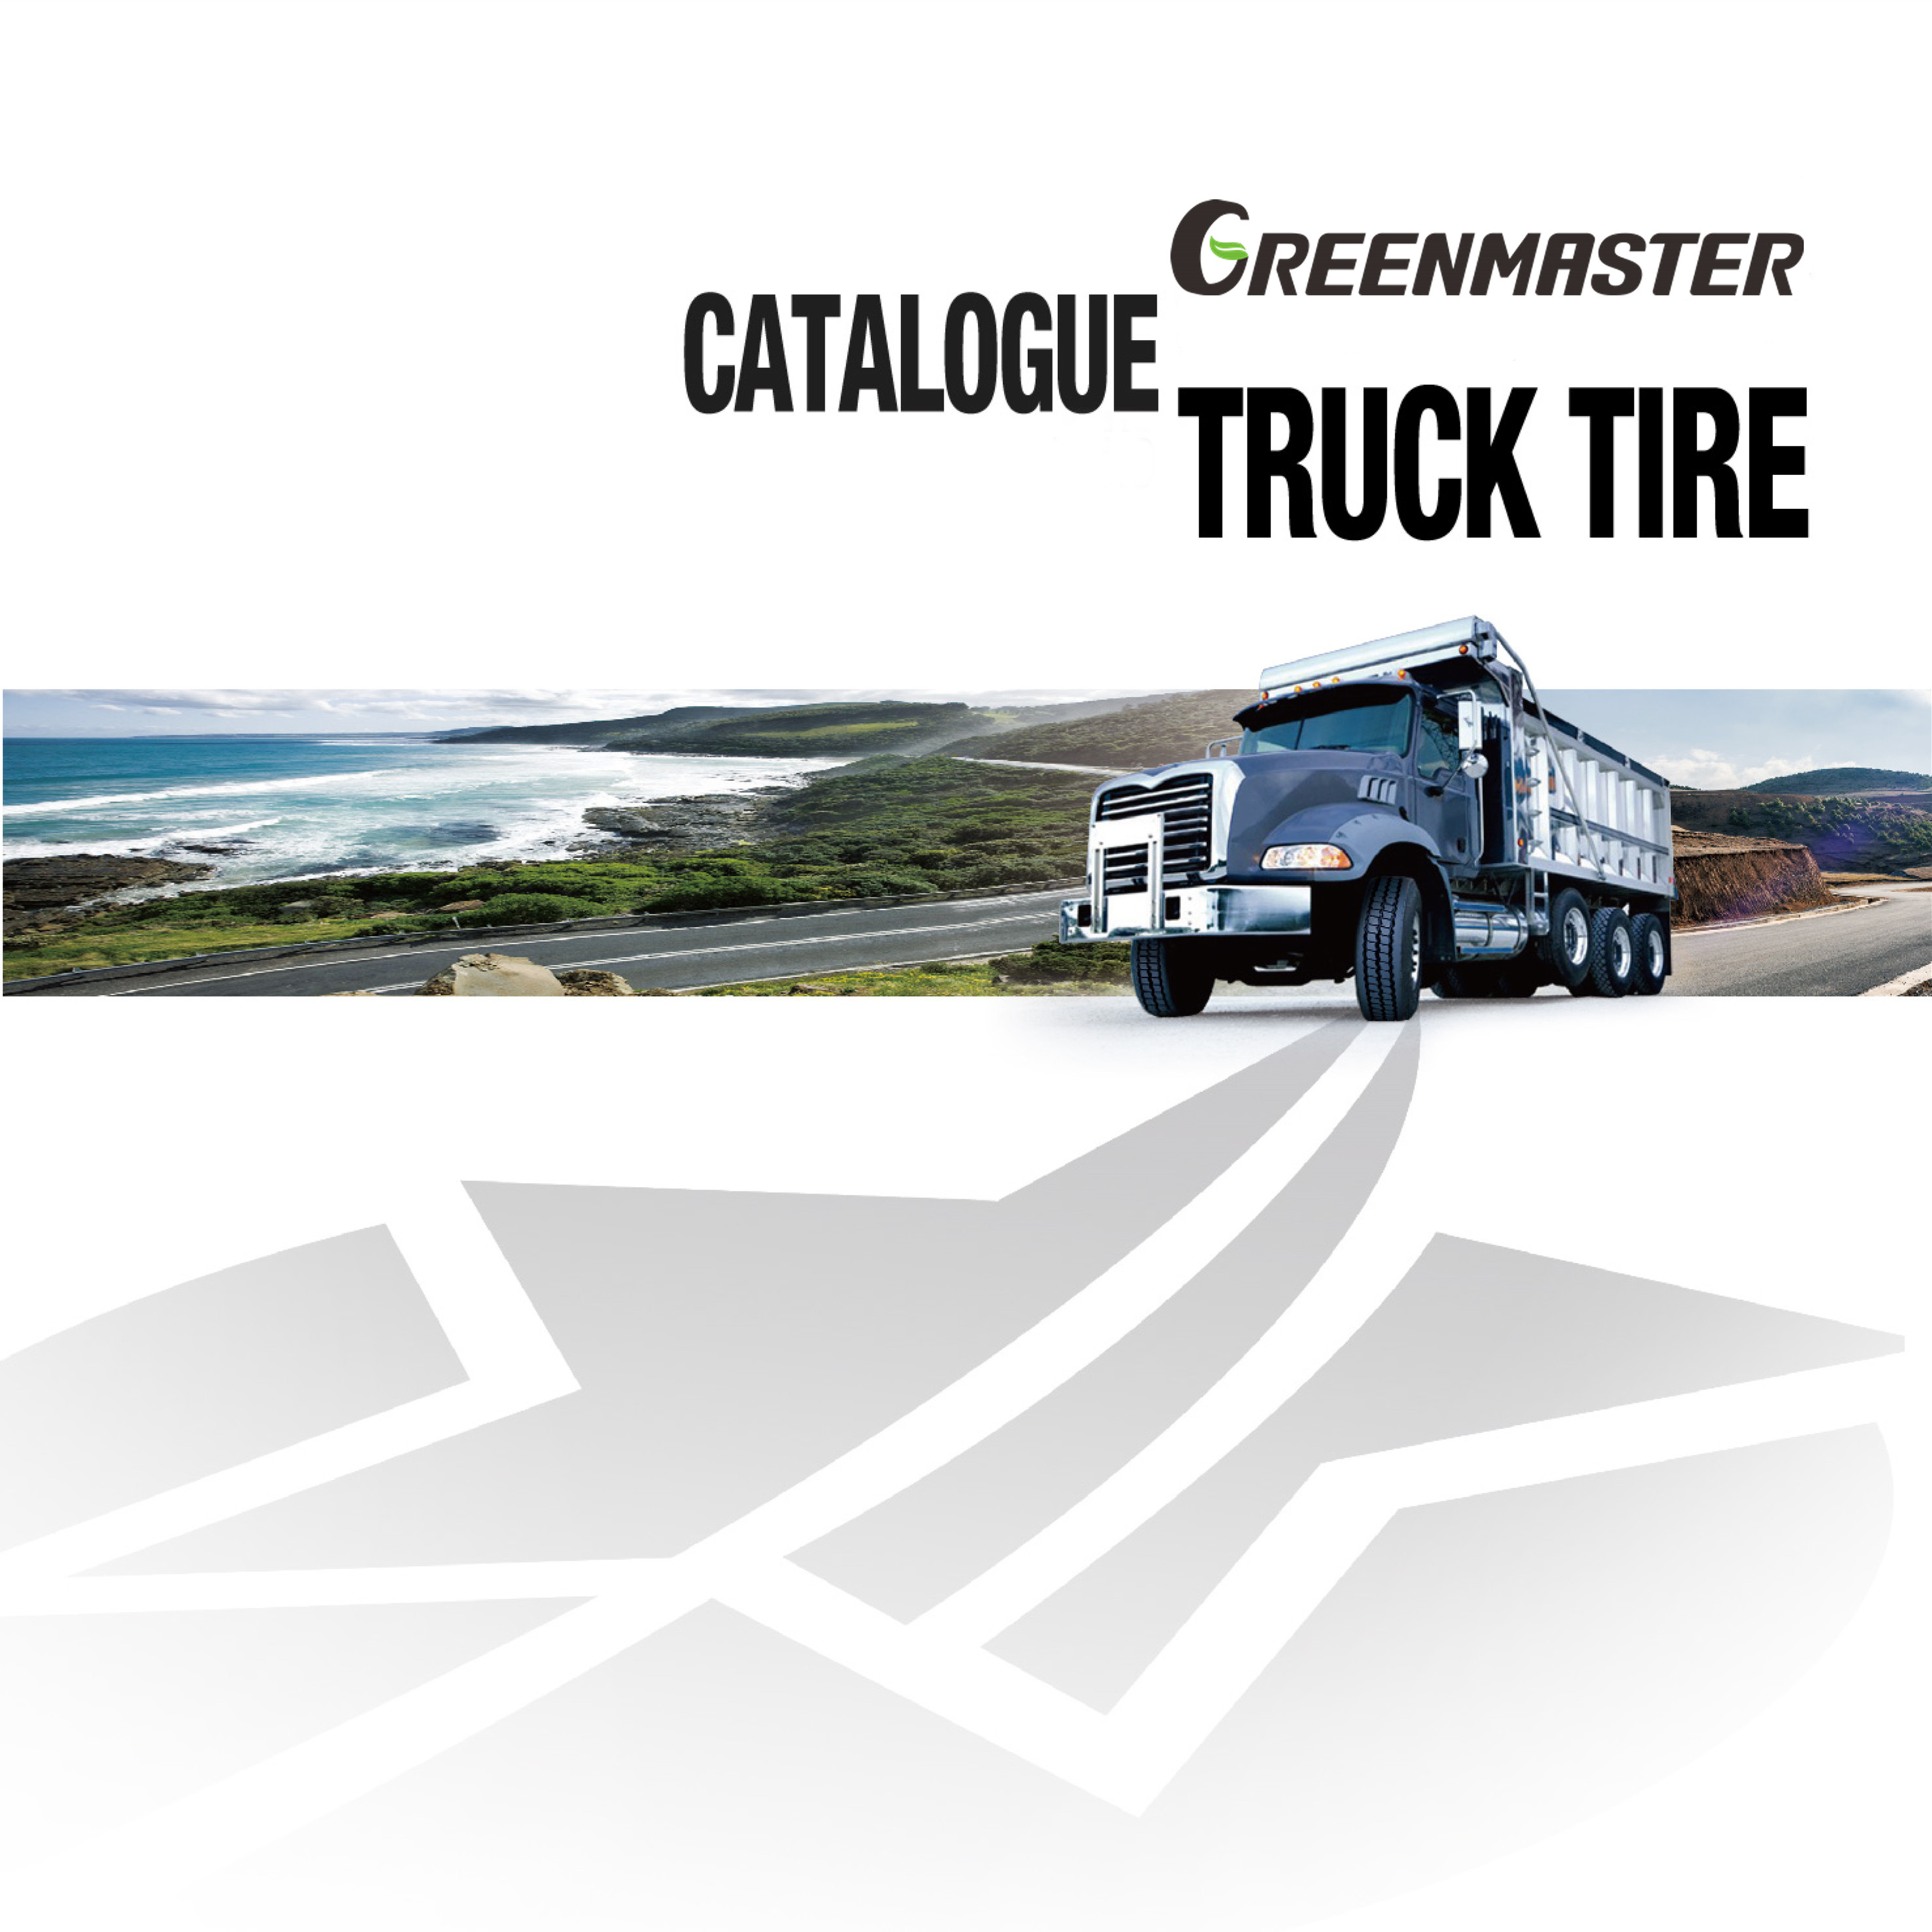 2018 Truck & Bus Tyres Catalogue